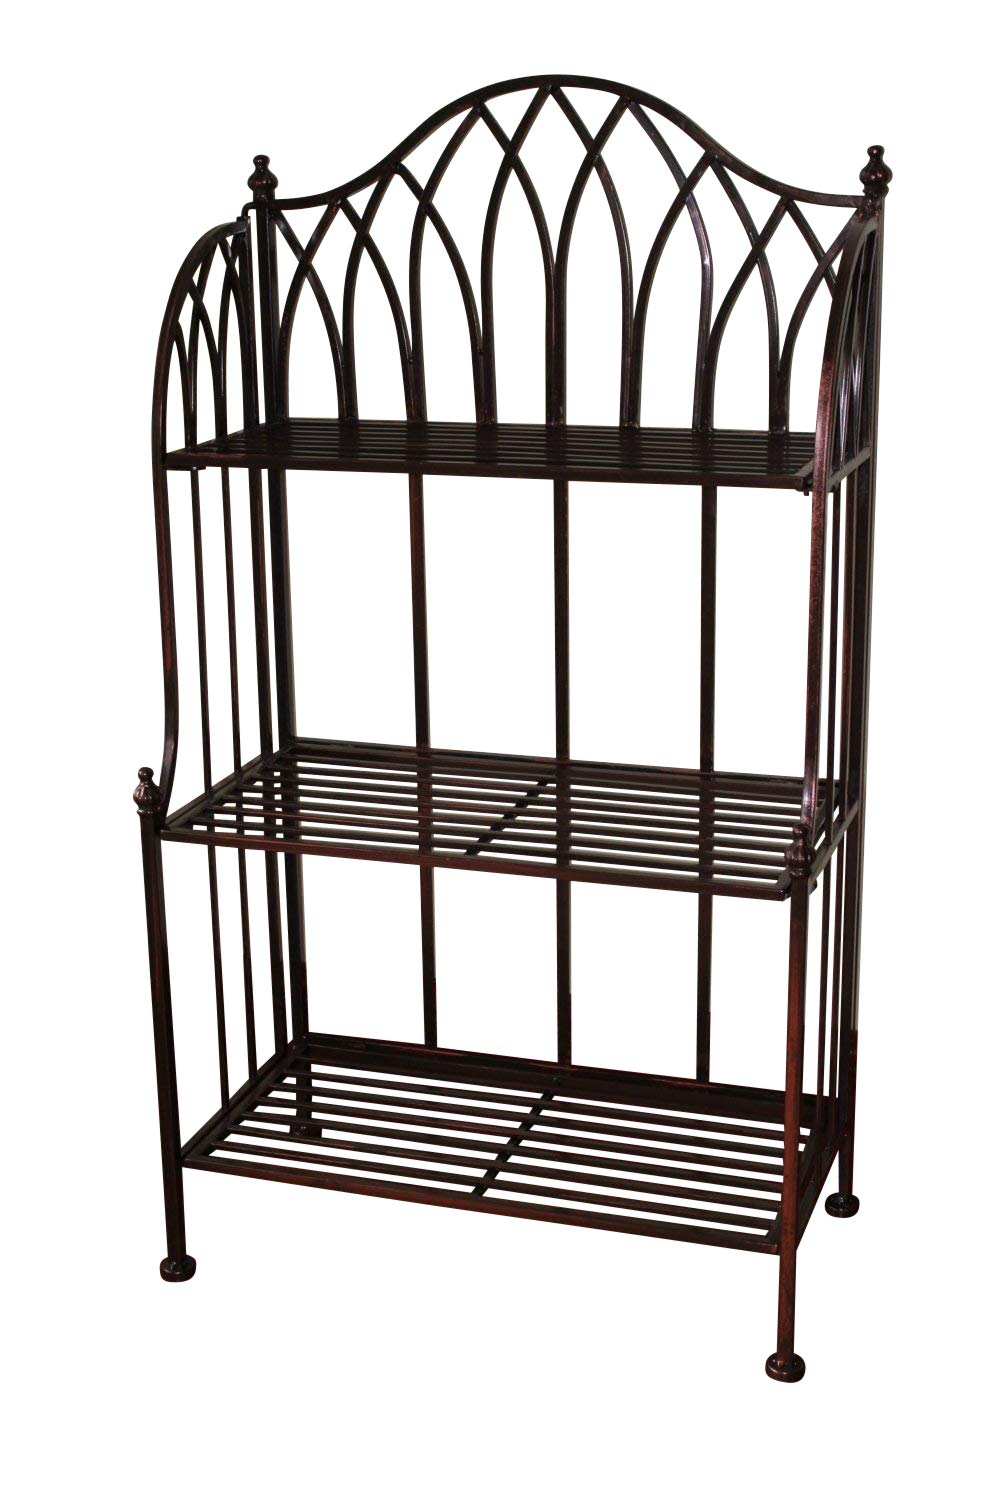 Olive Grove Versailles Metal 3 Tier Folding Rack- Ideal as a plant stand or general shelving Garden Market Place